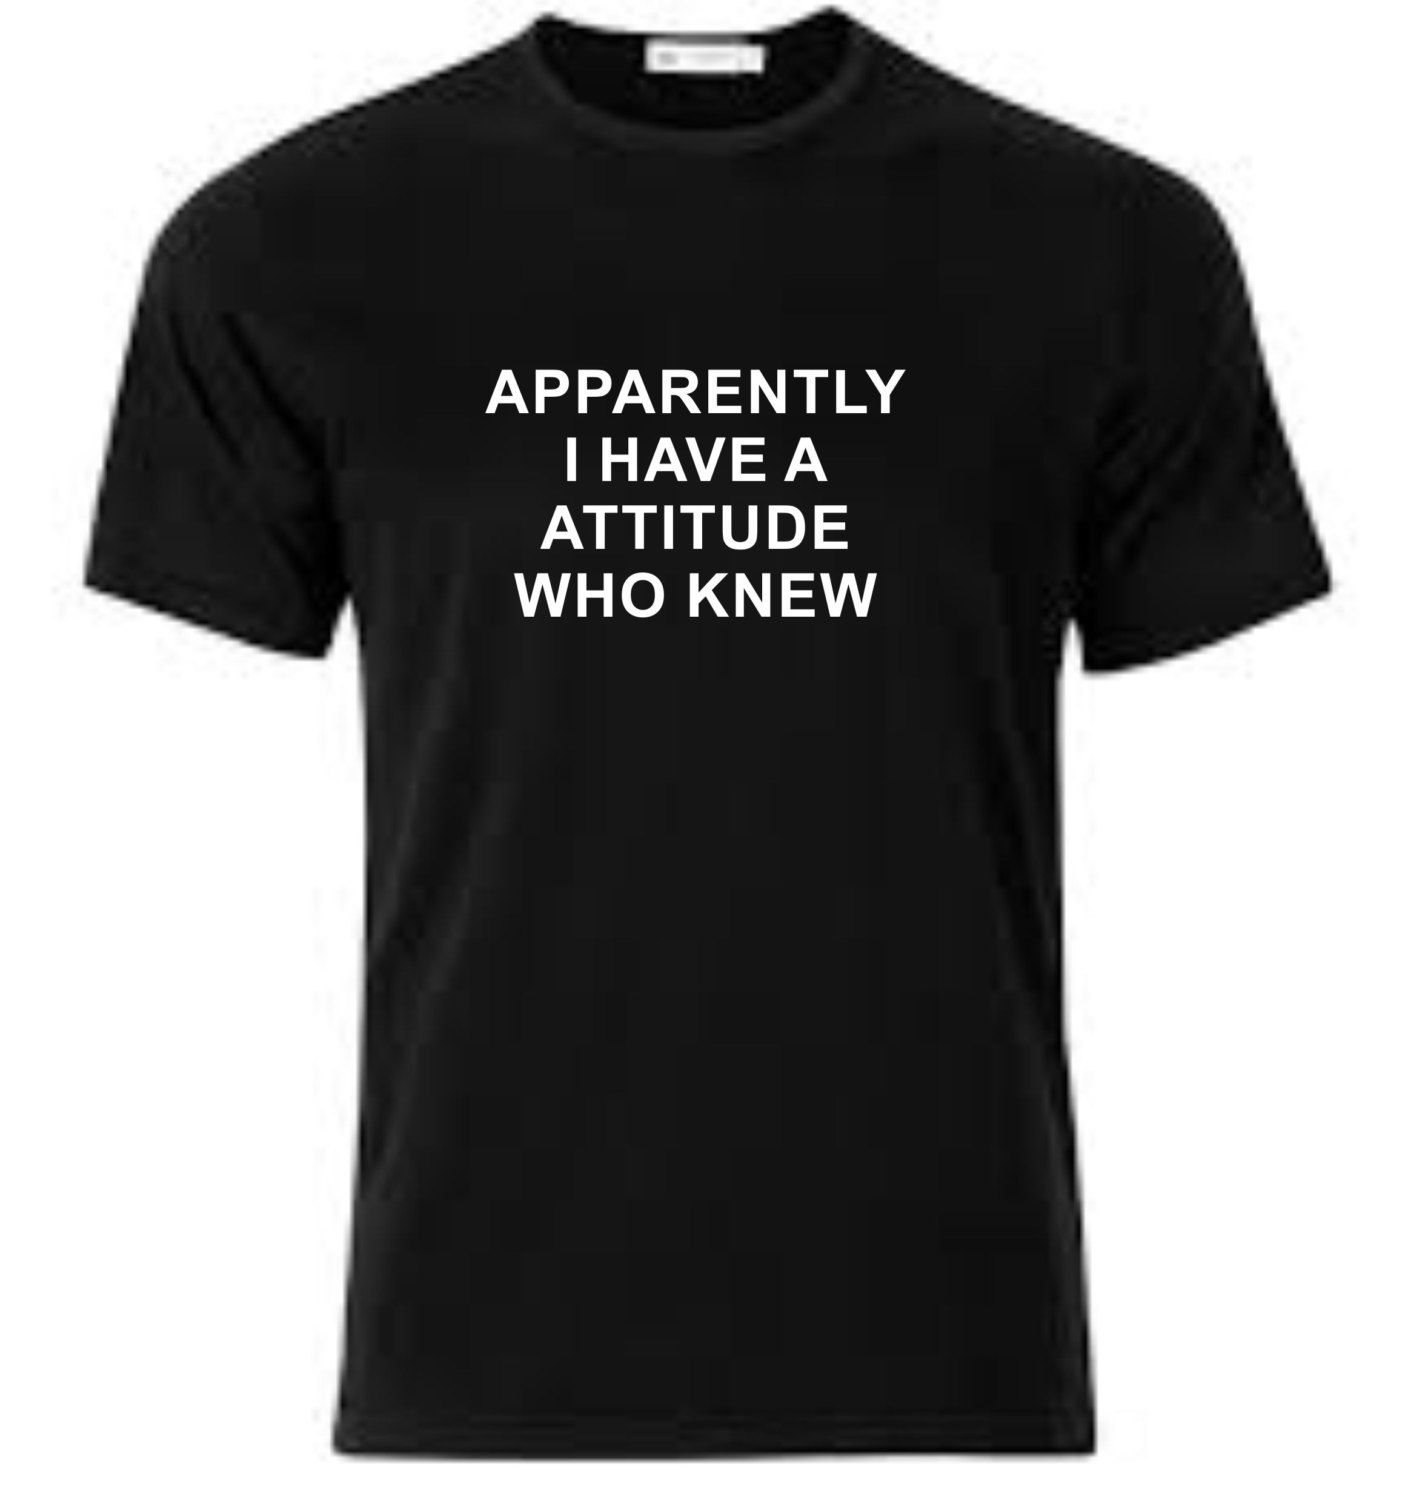 I Have A Attitude T-Shirt Printed T-Shirt by NeedleNPin on Etsy